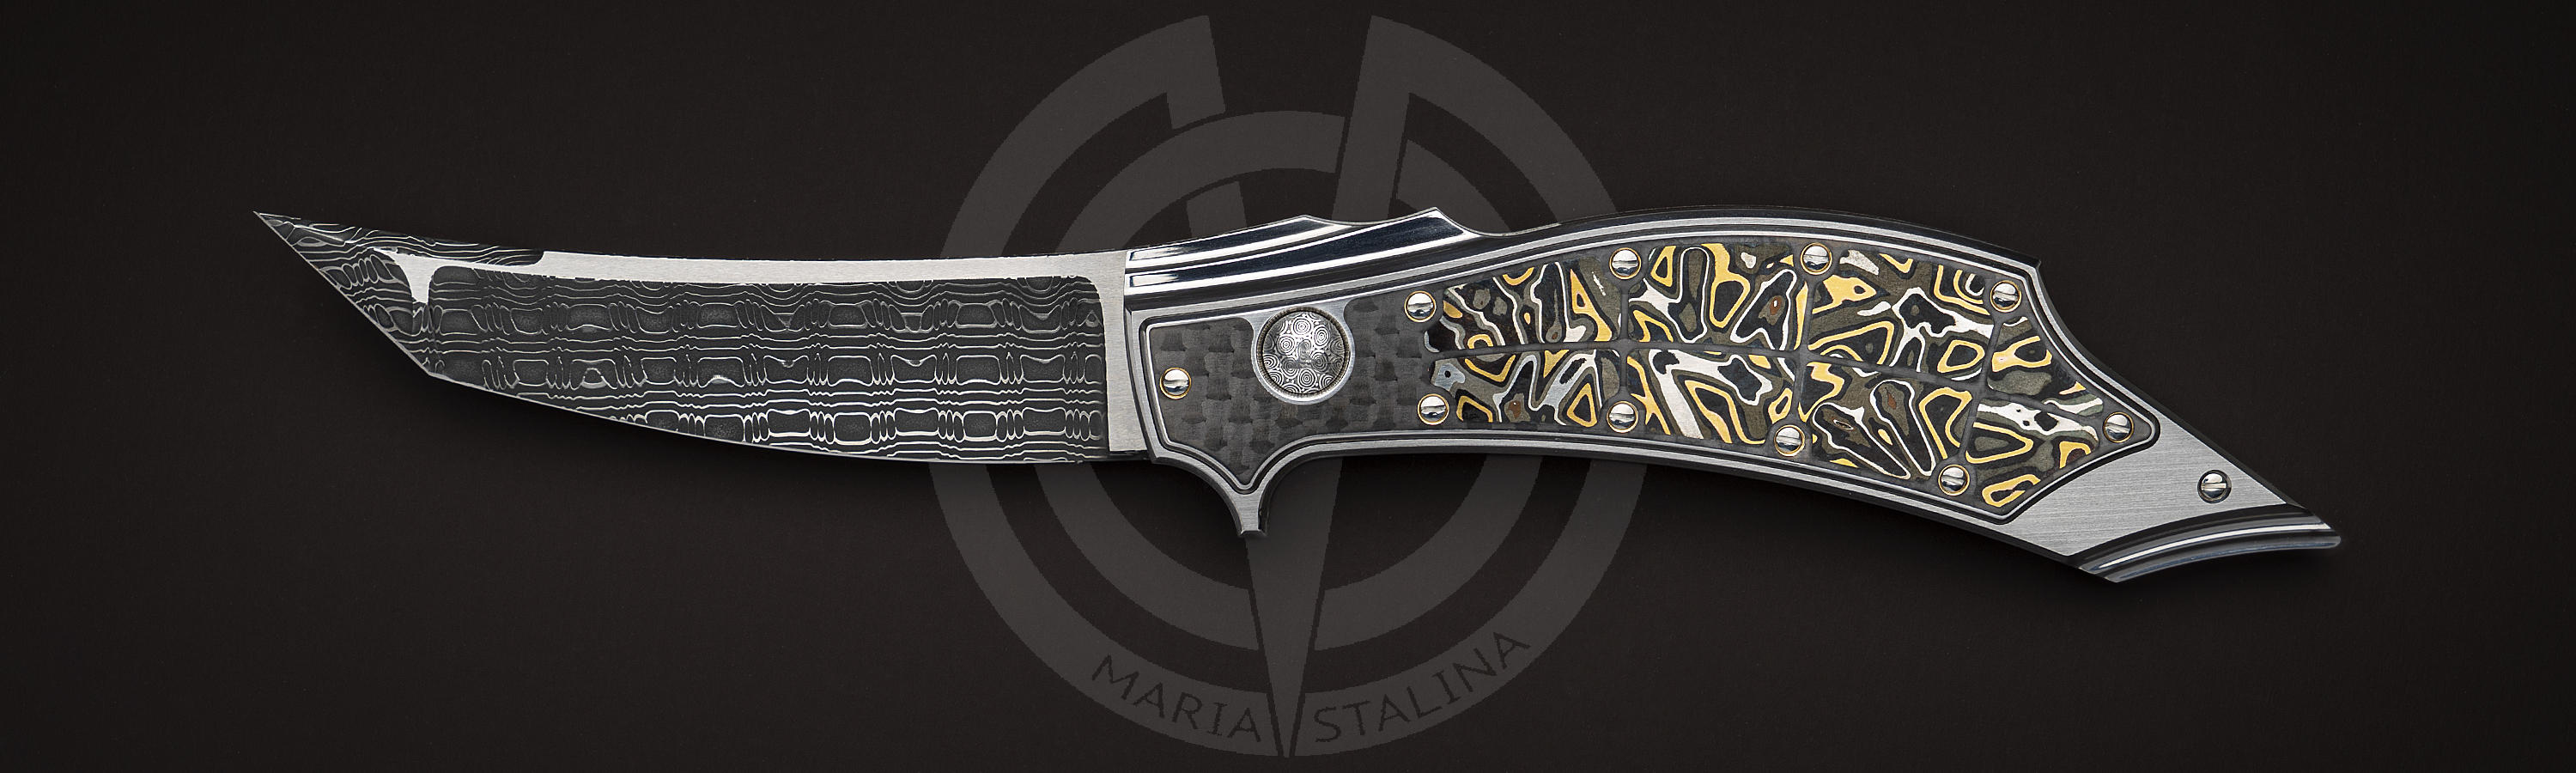 Collectible prototype knife White Fang